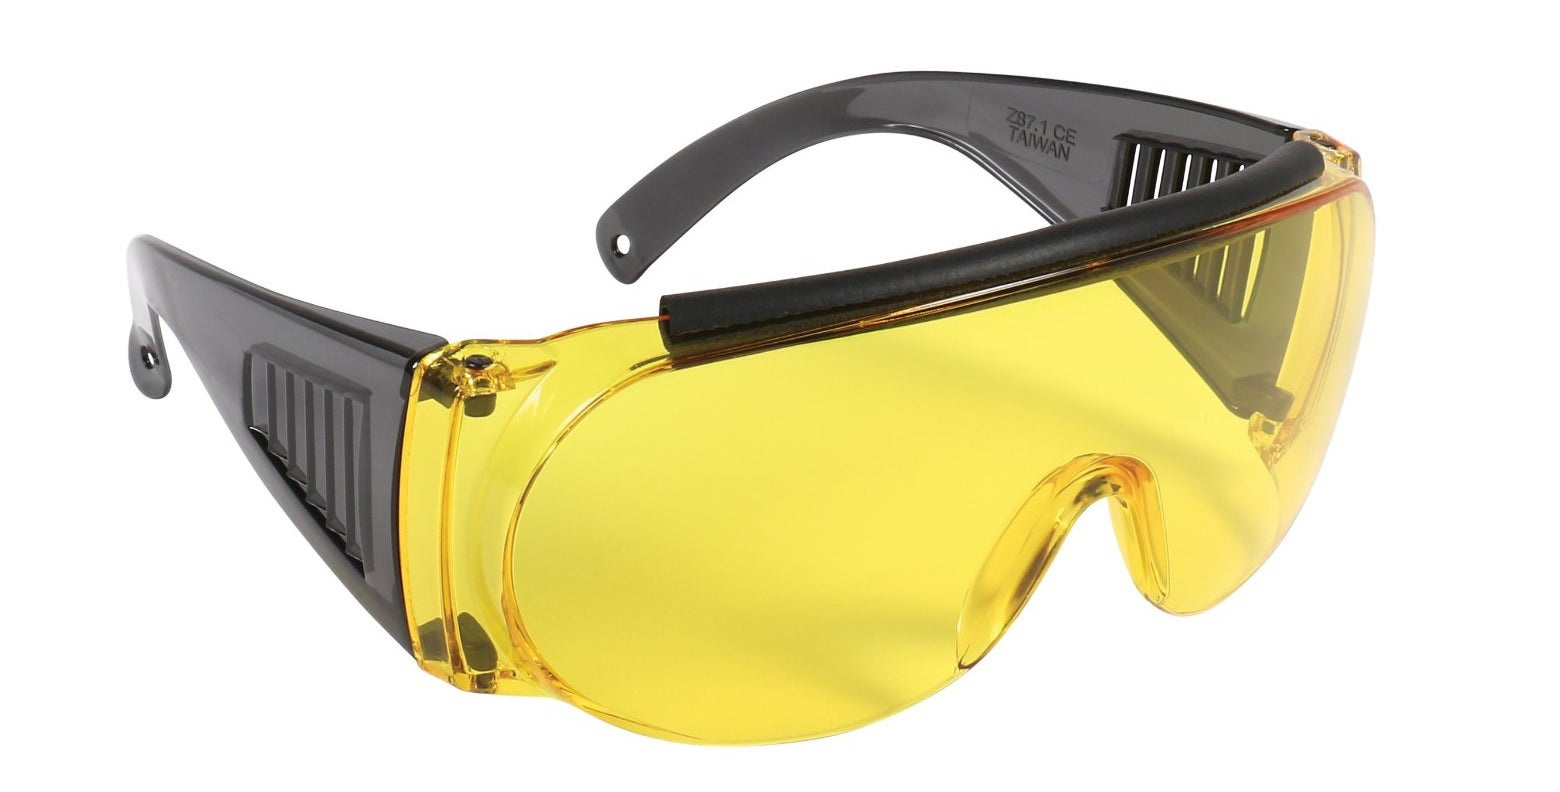 These Allen Over Shooting & Safety Glasses